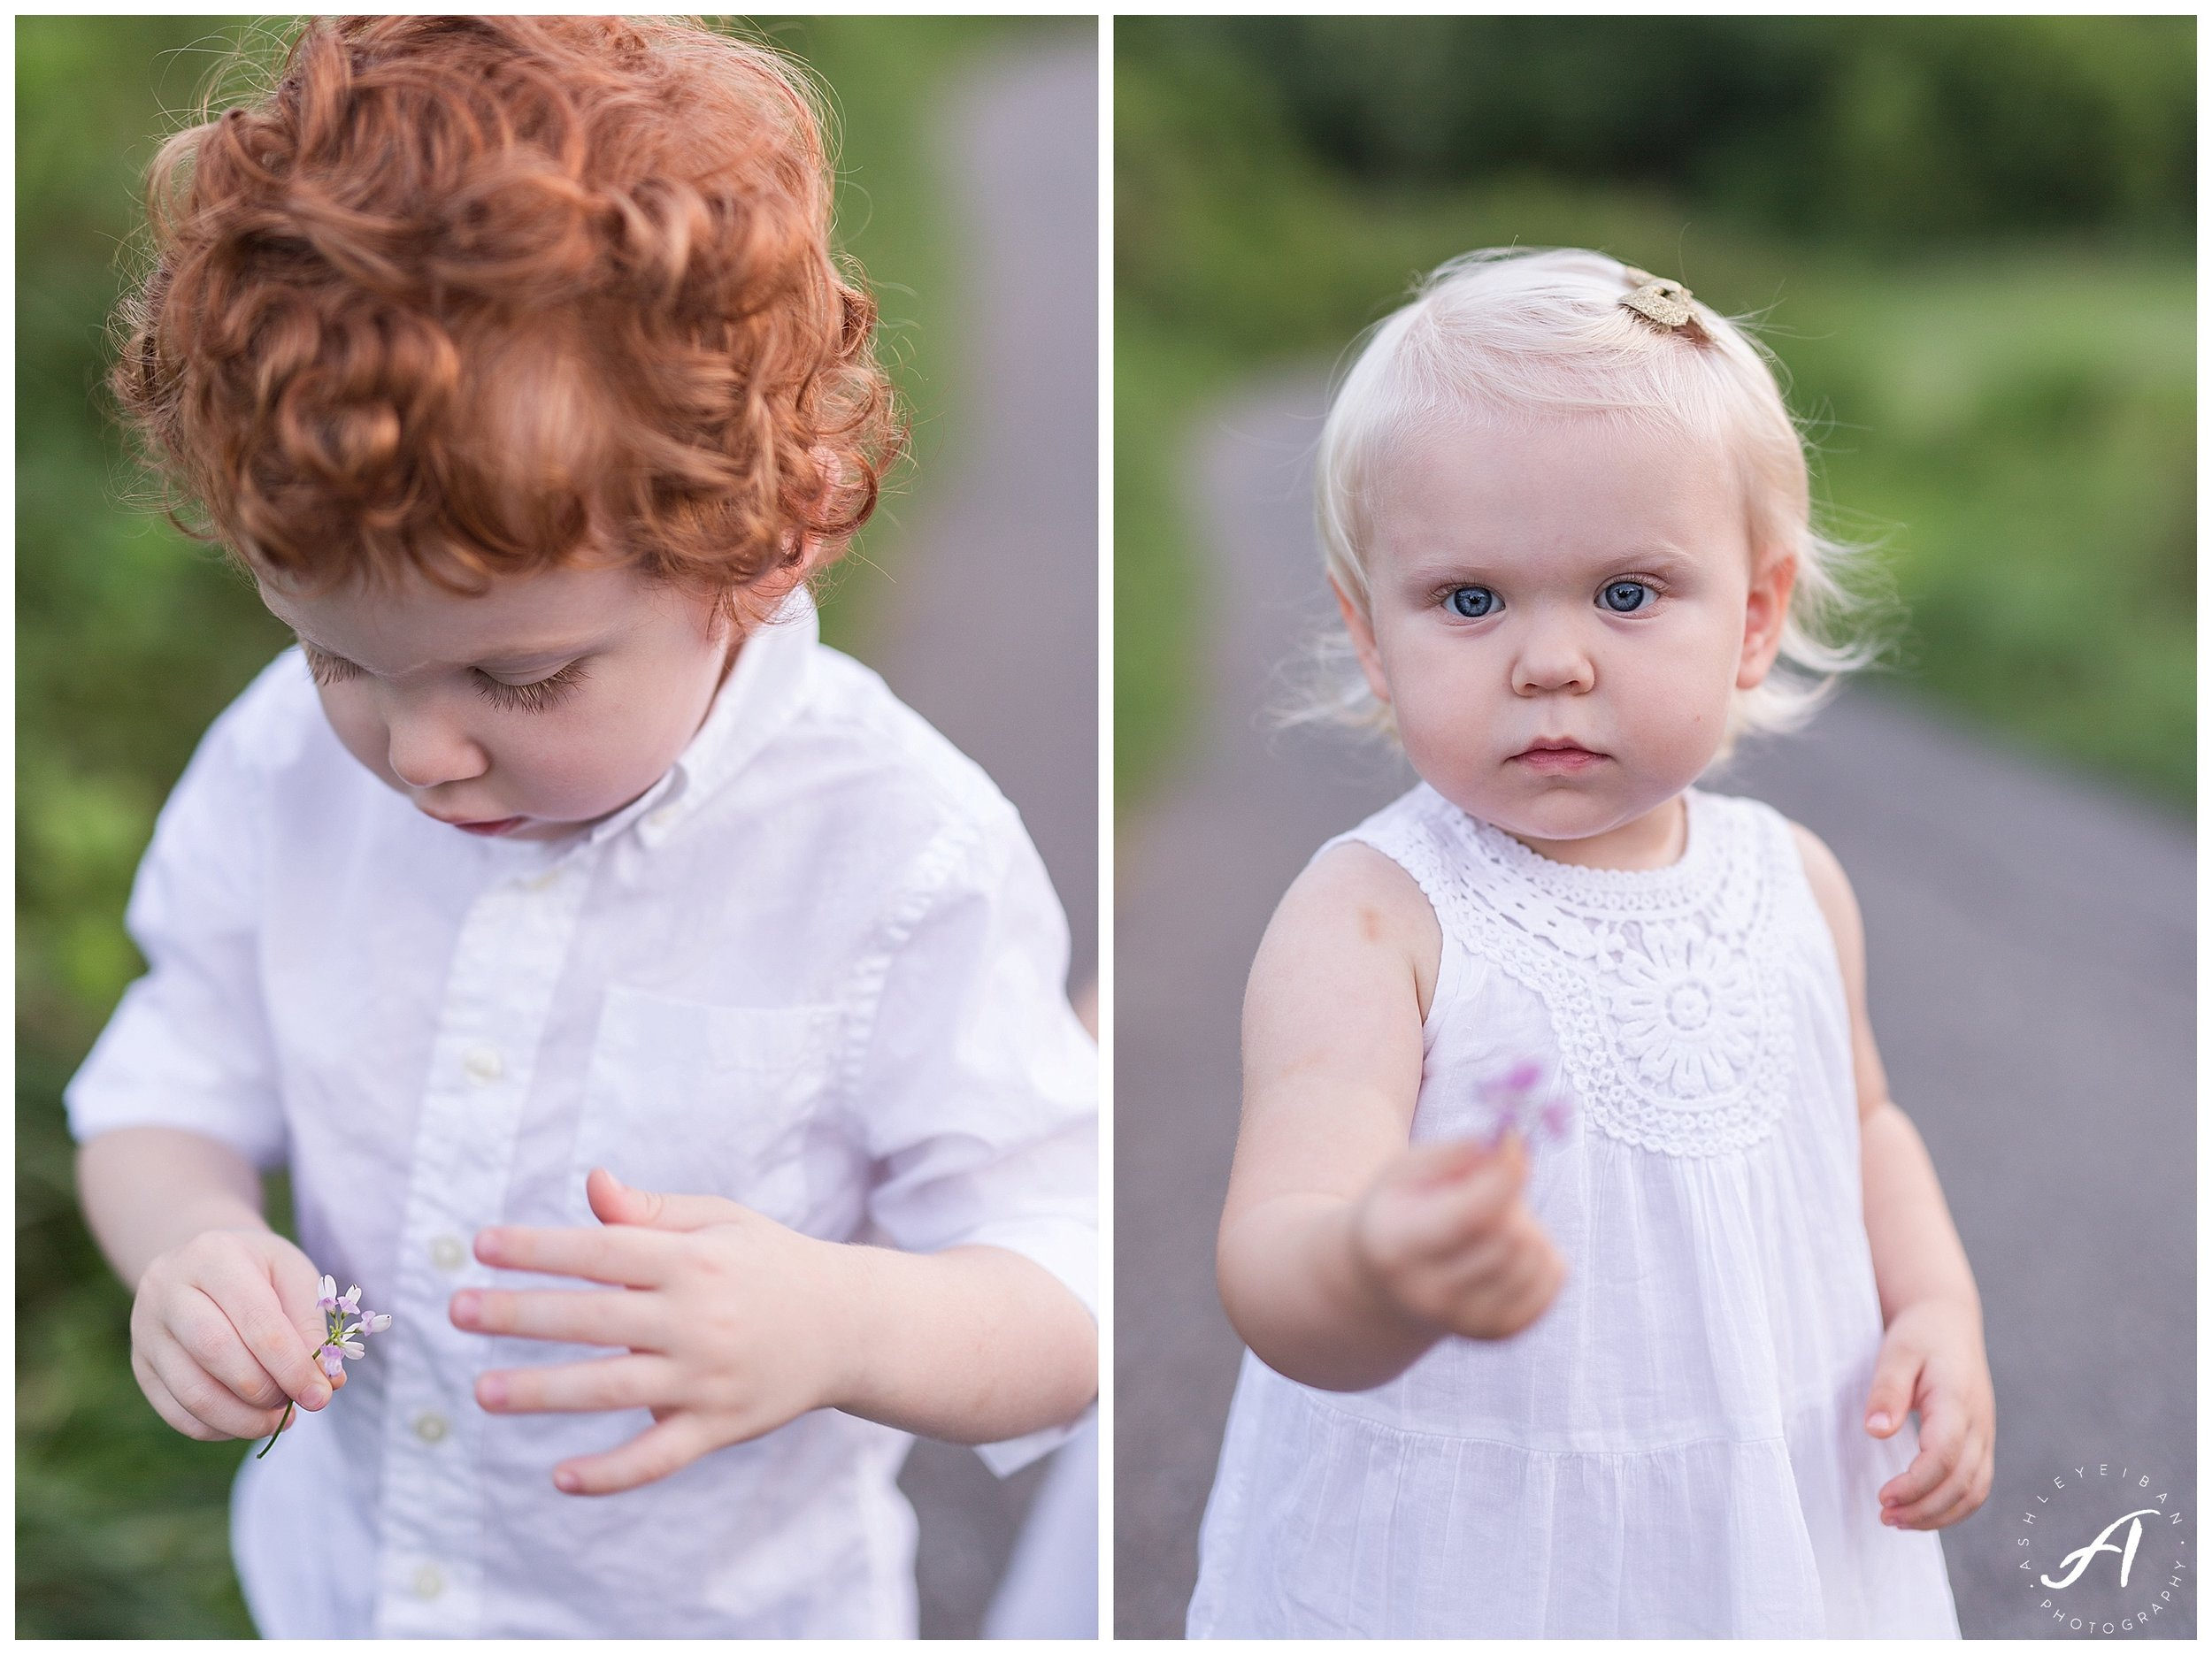 Lynchburg Virginia Family Photographer || Central VA Wedding and Portrait Photographer || Ashley Eiban Photography || www.ashleyeiban.com